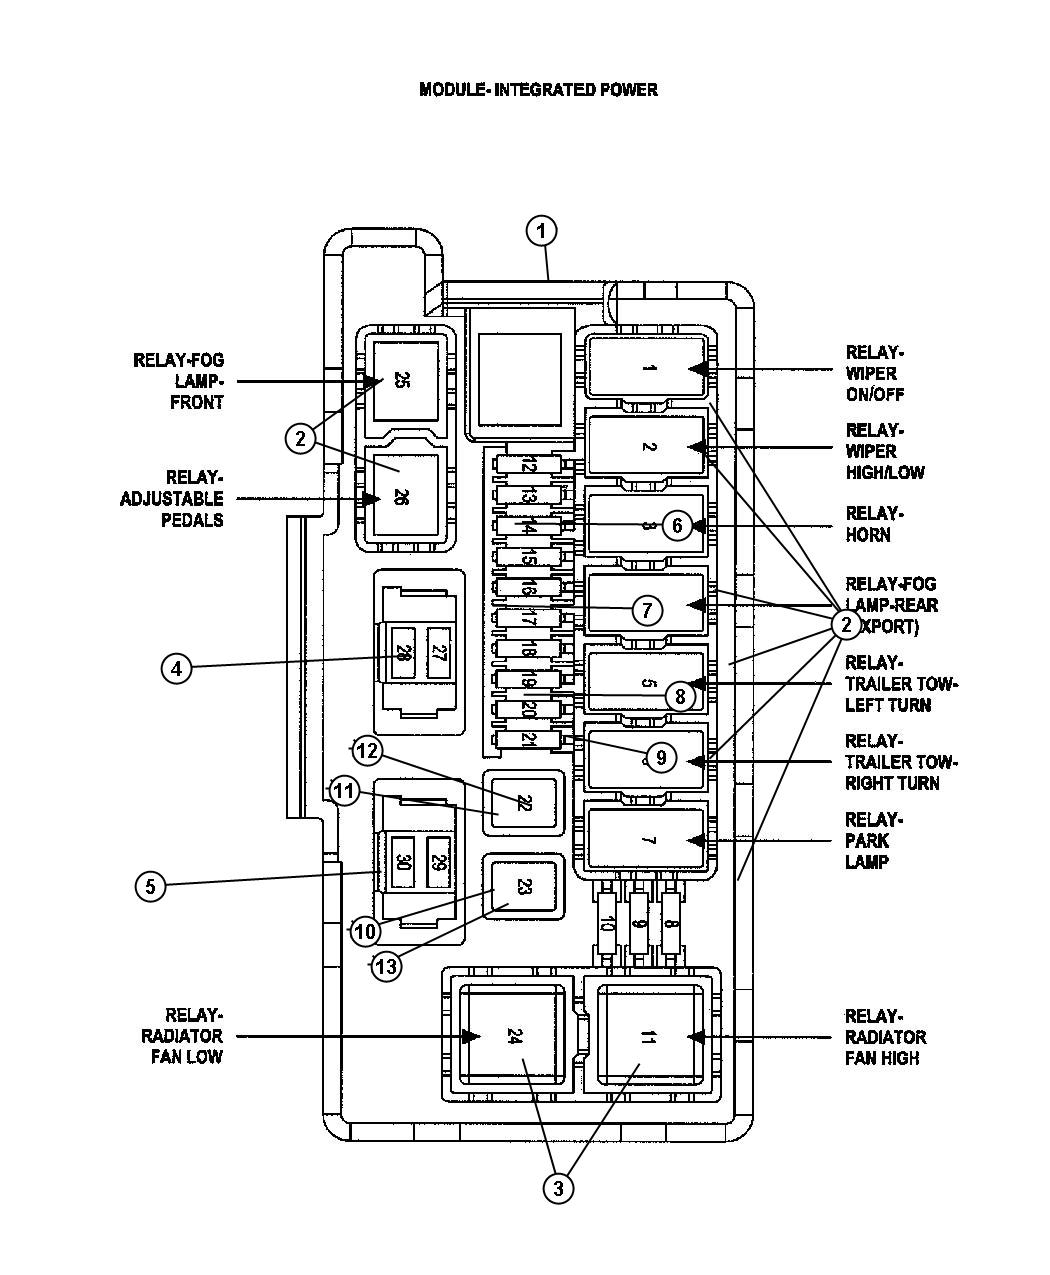 i2163577 jeep stereo wiring diagram jeep free wiring diagrams 2006 jeep commander trailer wiring diagram at bayanpartner.co